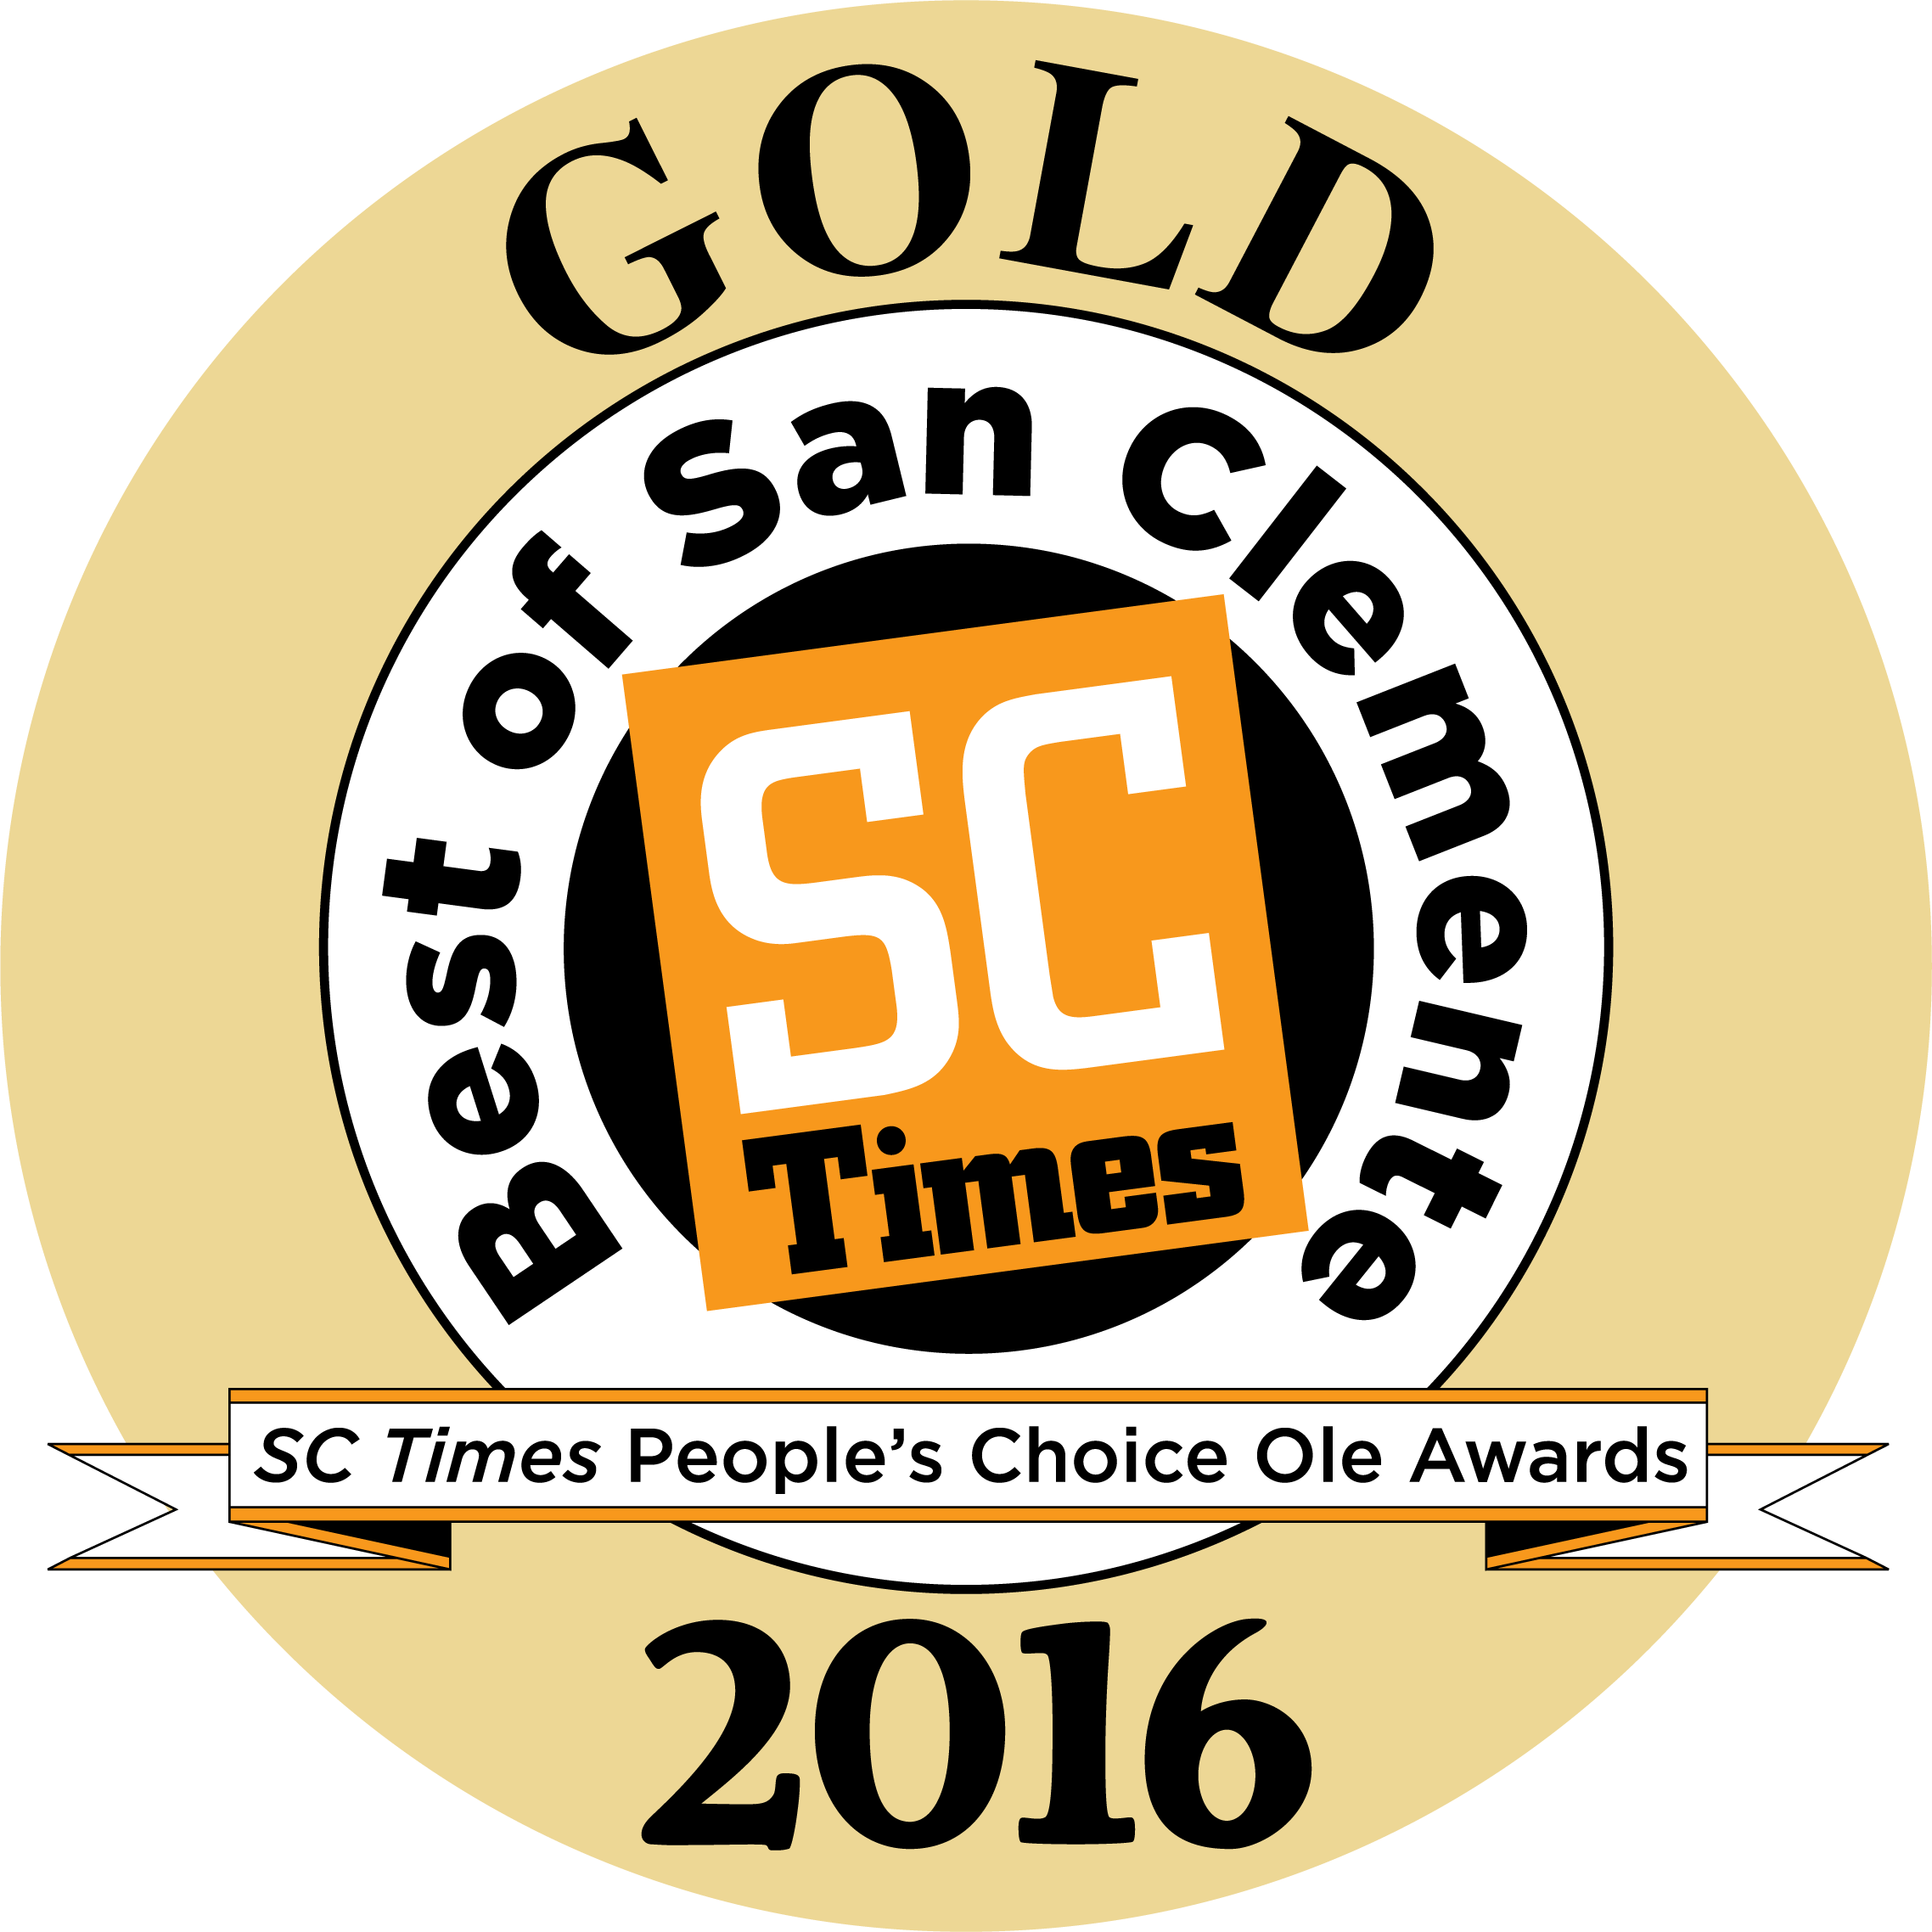 sctimes 17 gold logo.png